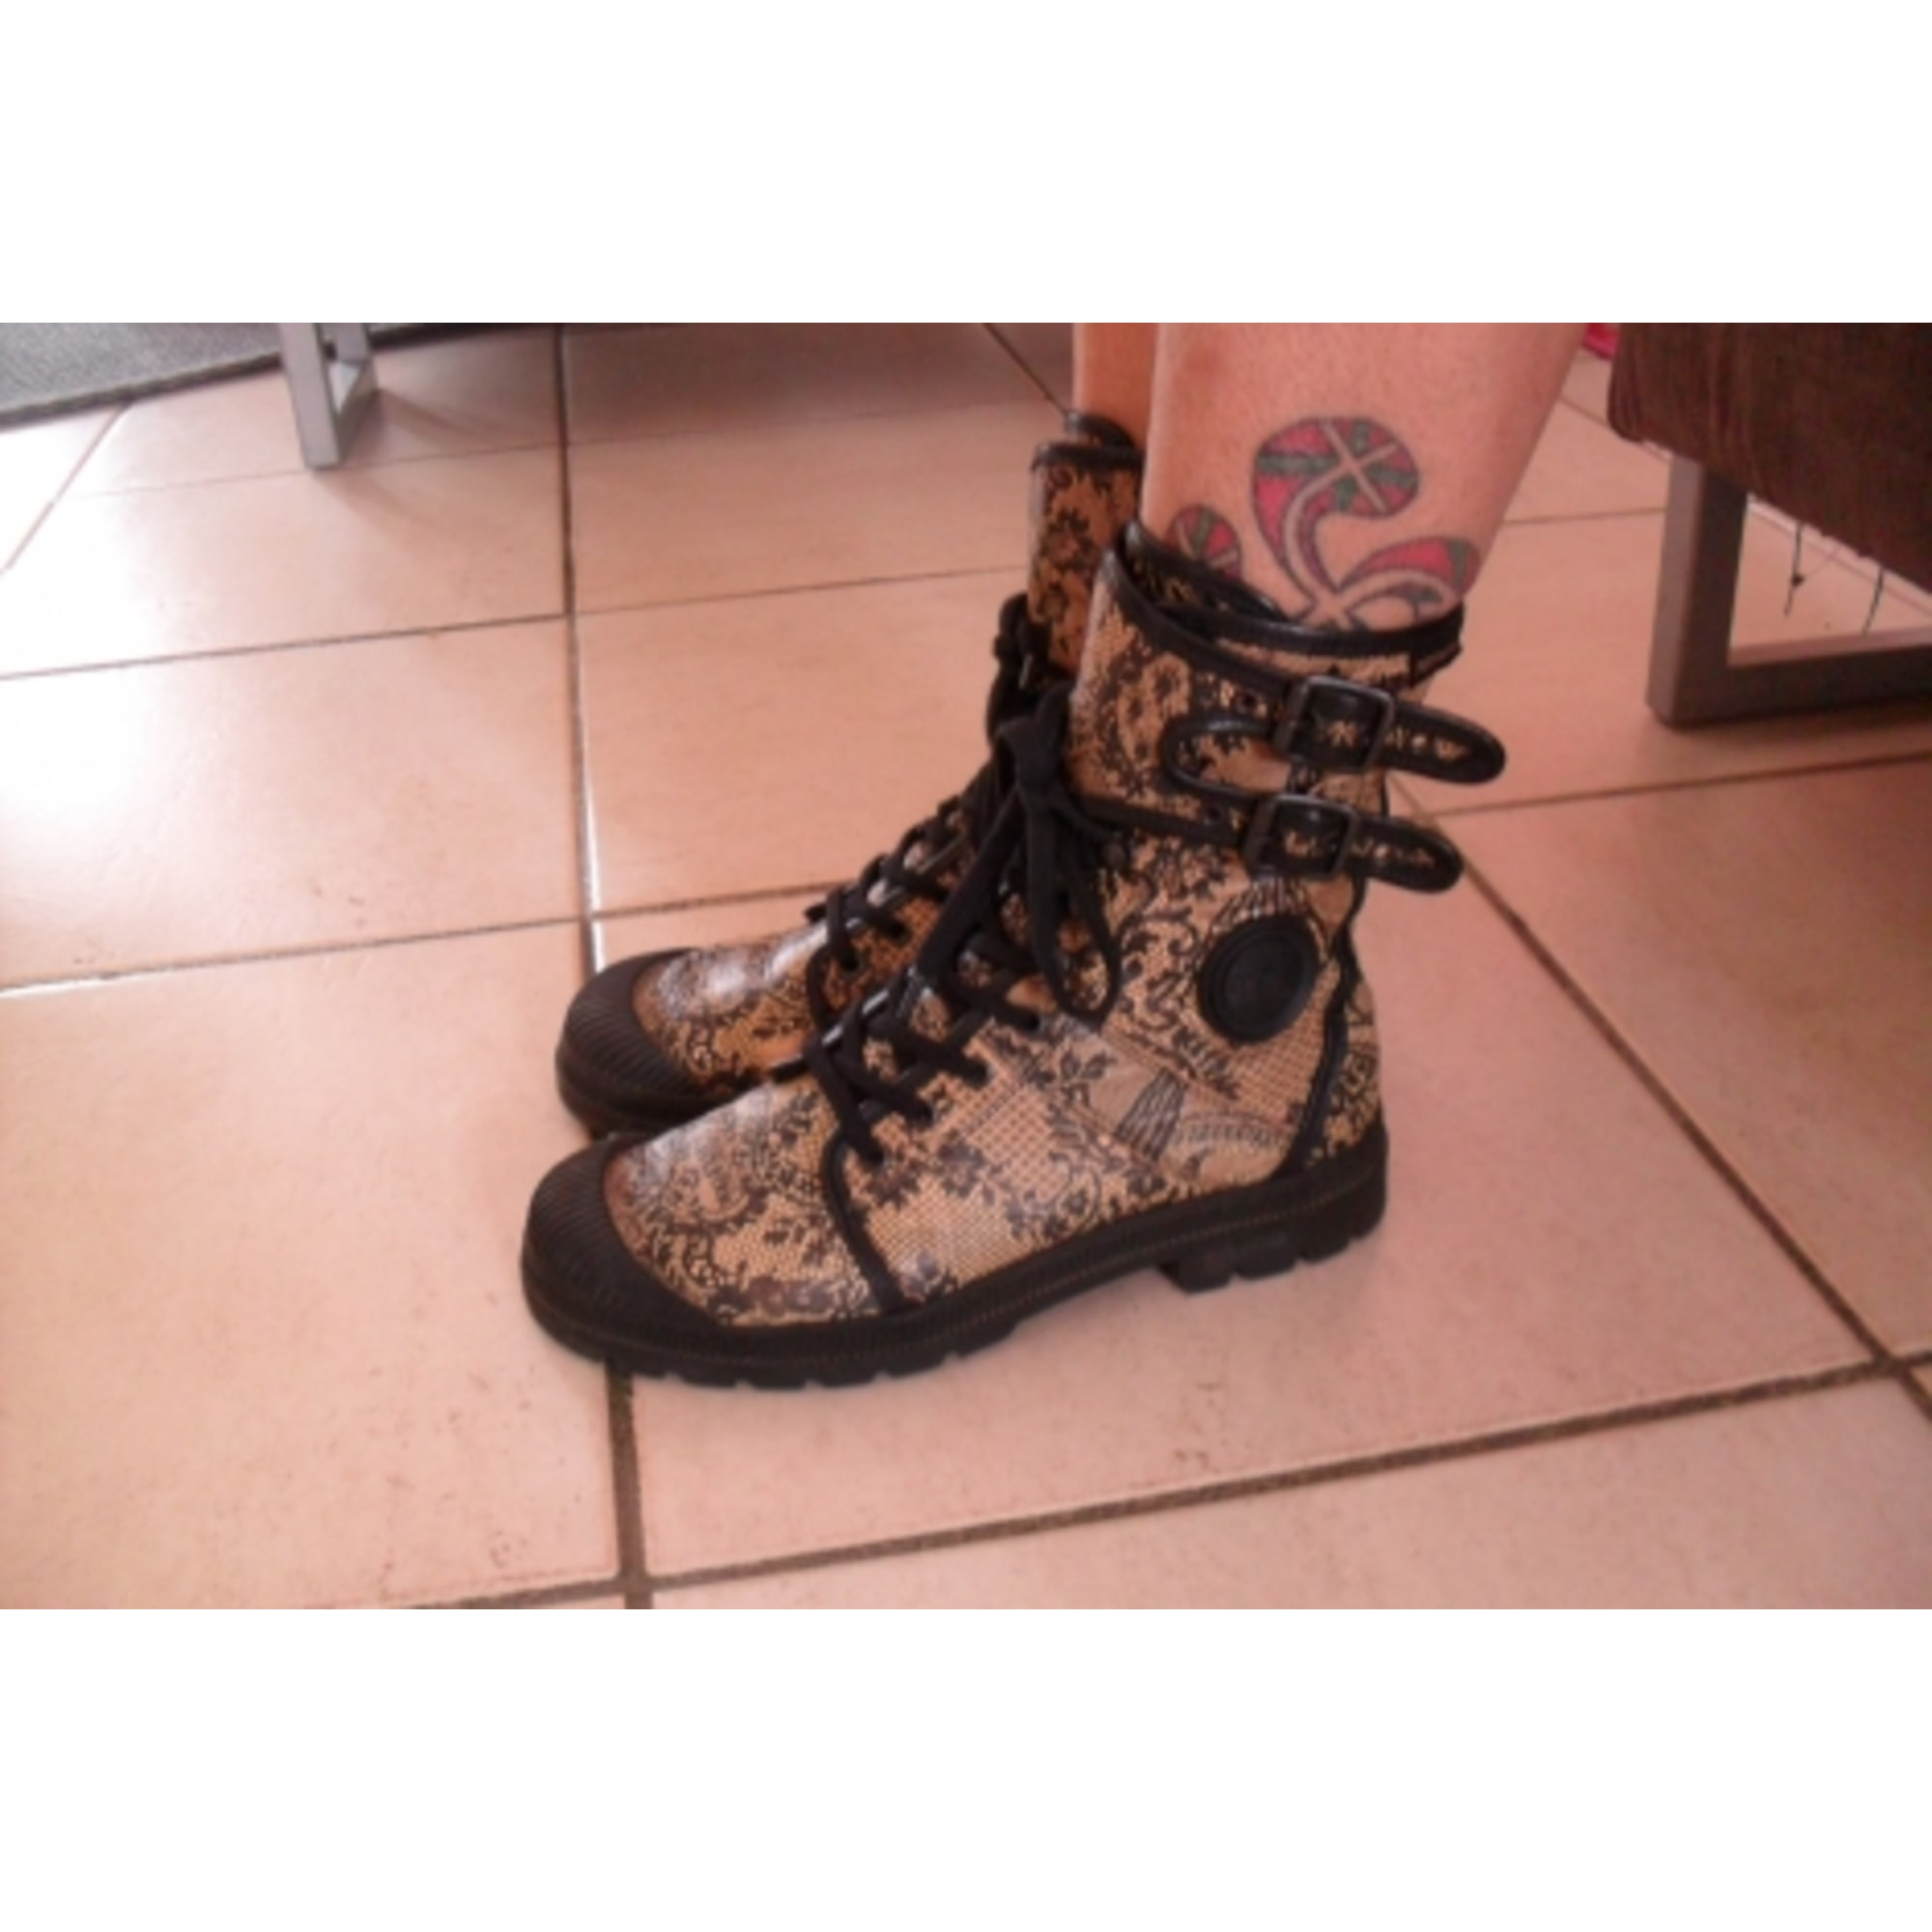 Boots Low Plates Bottinesamp; Low Low Plates Boots Bottinesamp; Plates Bottinesamp; Boots kXTwPZiuOl